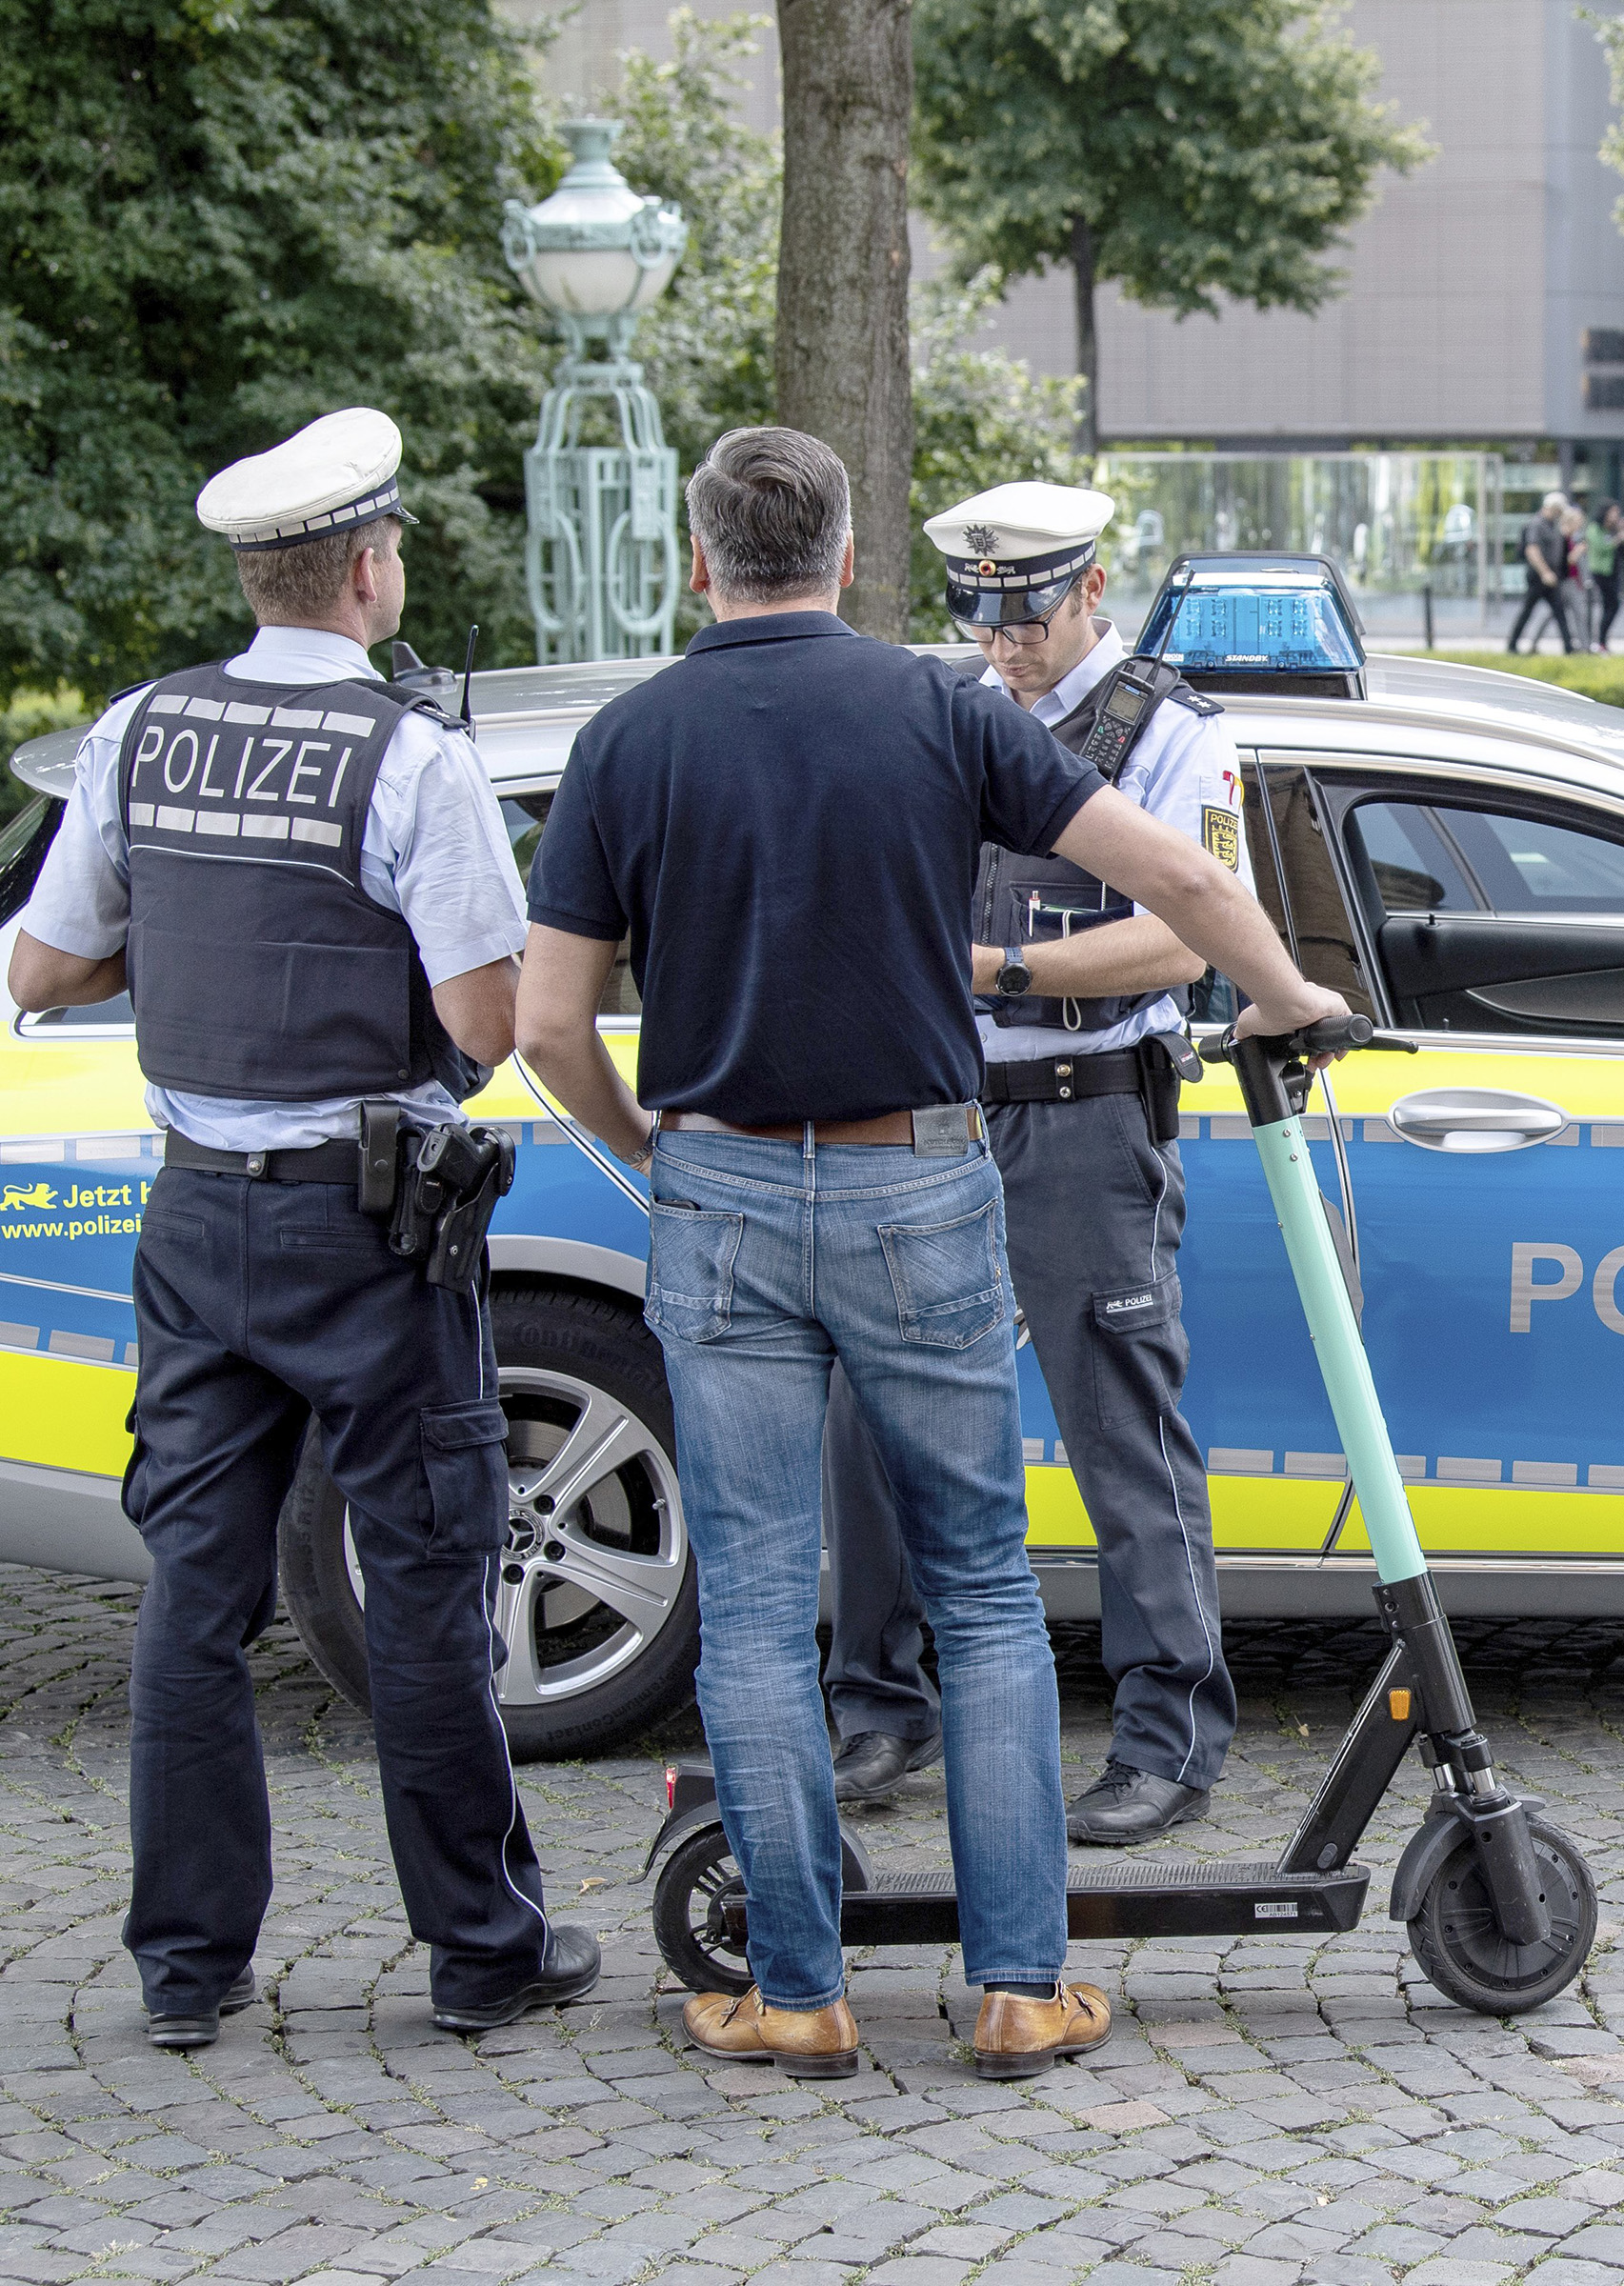 During a police check, an e-scooter driver is warned by the police because he has driven over a pedestrian path in Stuttgart, Germany.